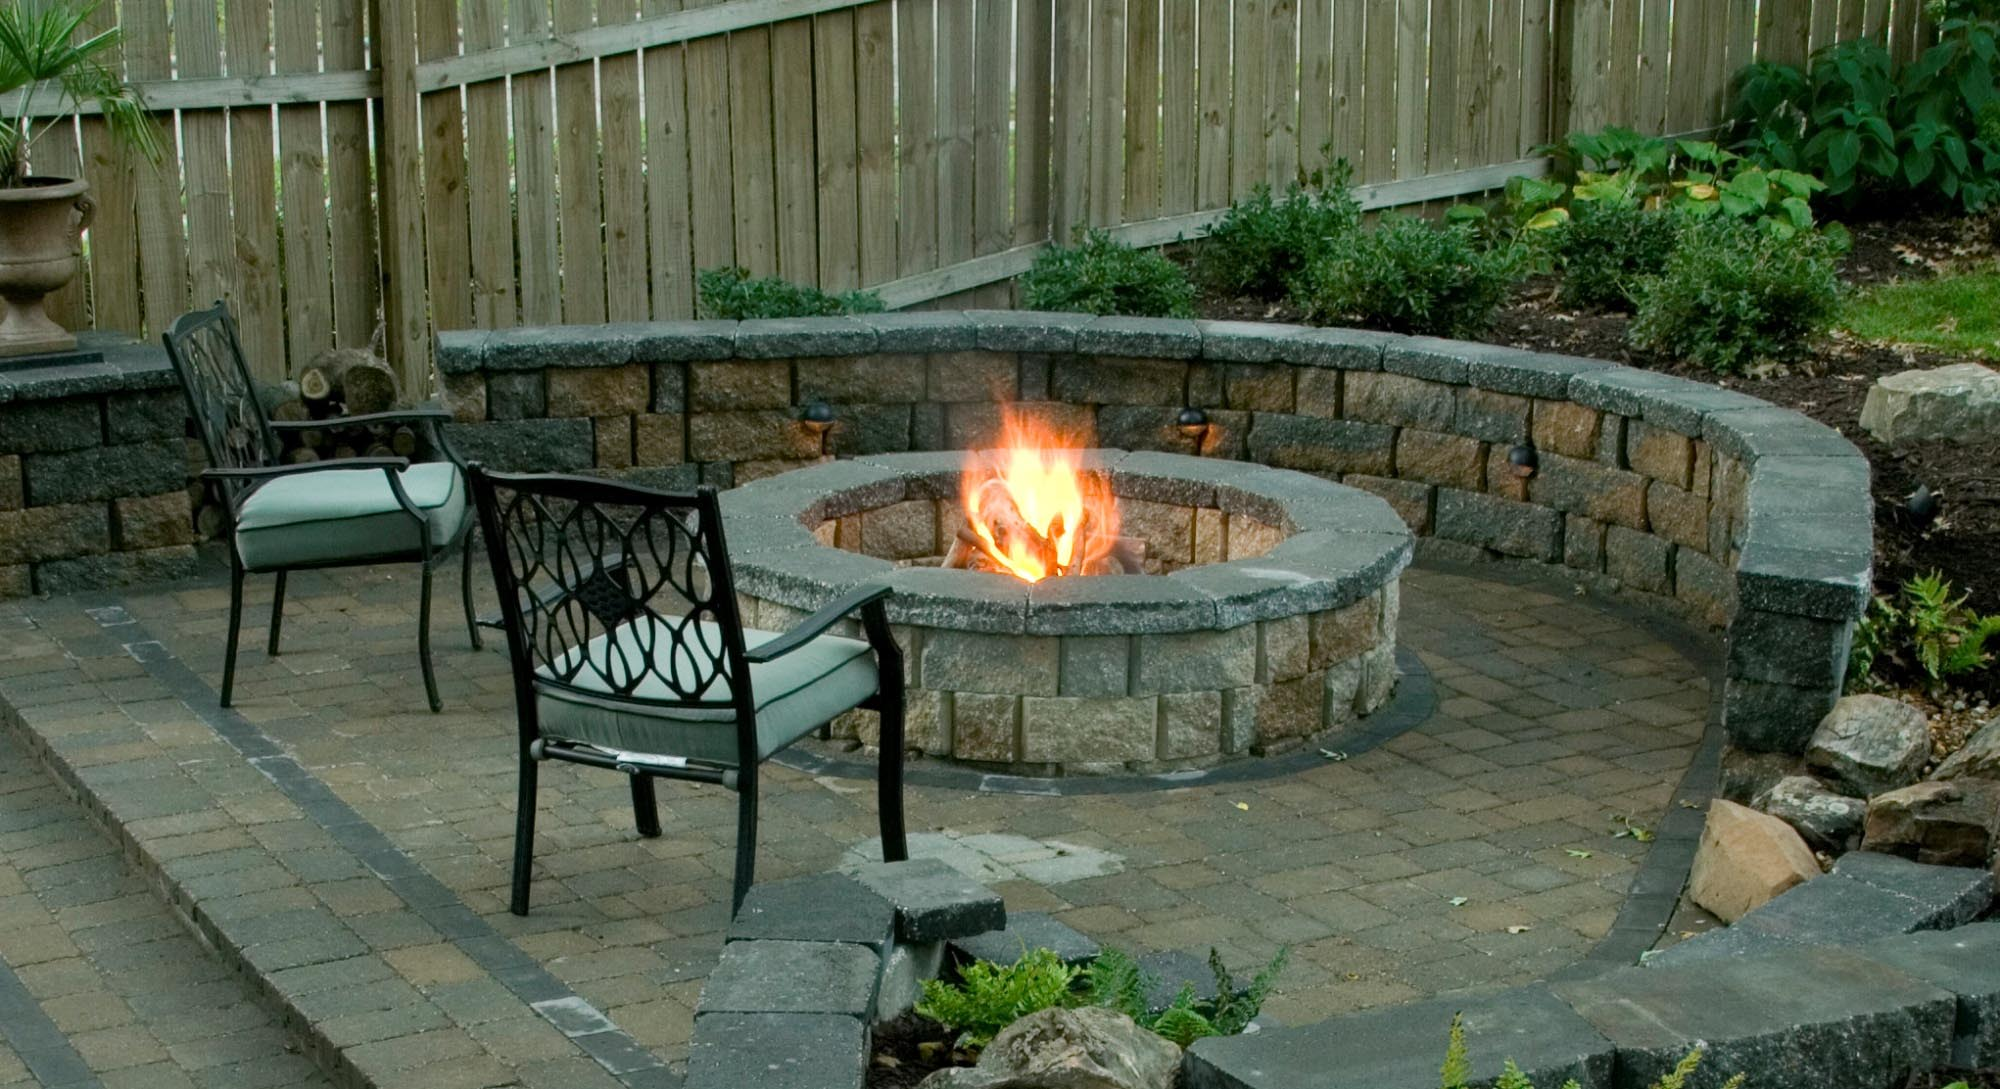 patio designs with fire pit - Patio Design Ideas With Fire Pits